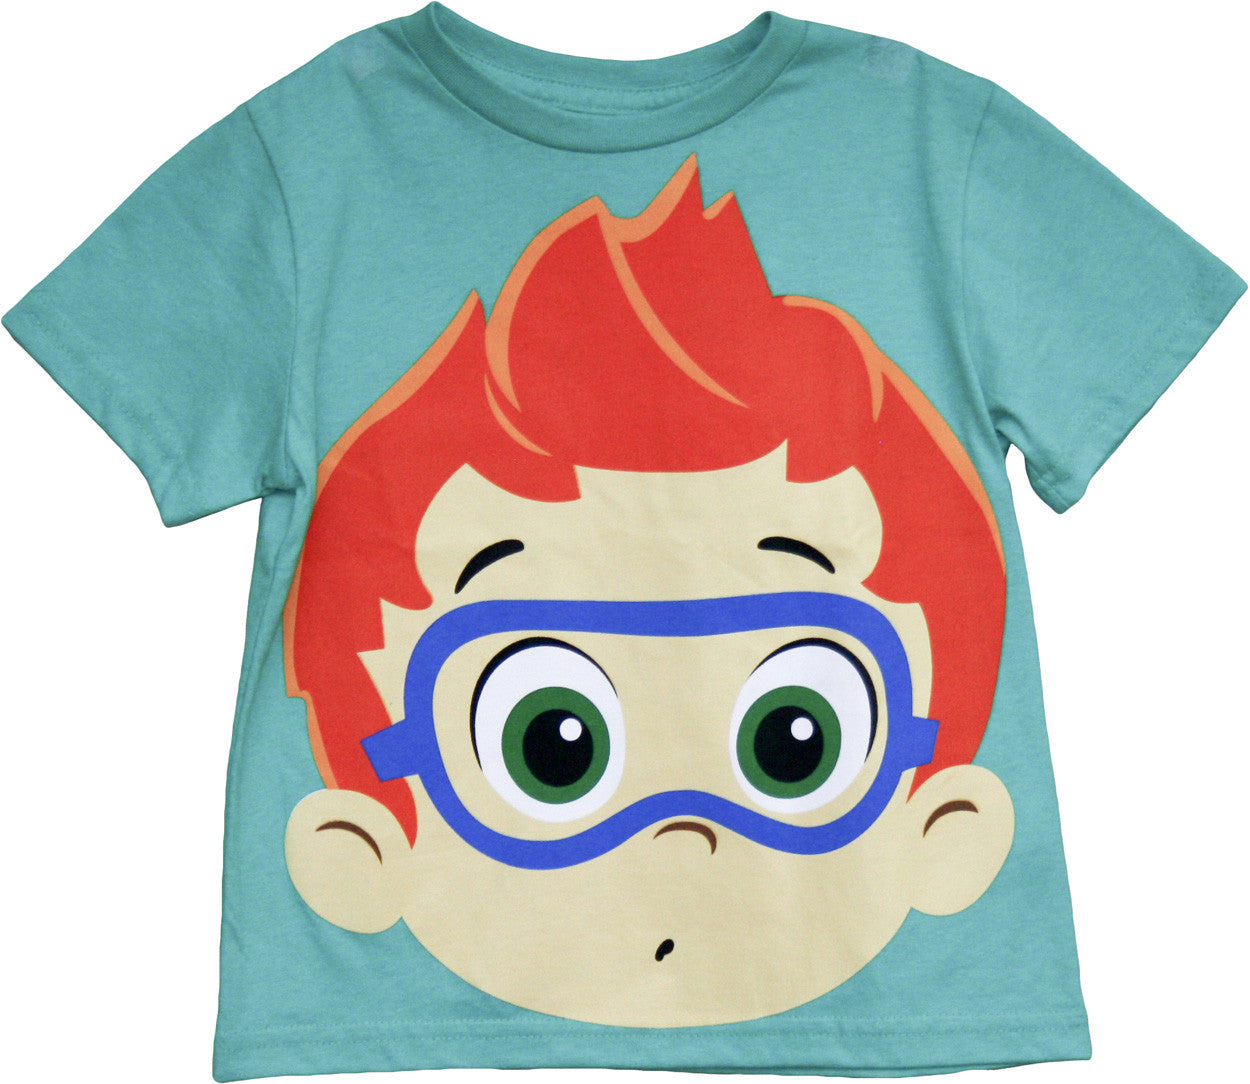 Bubble Guppies Nonny Tee - Toddler - nickelodeonstore.co.uk